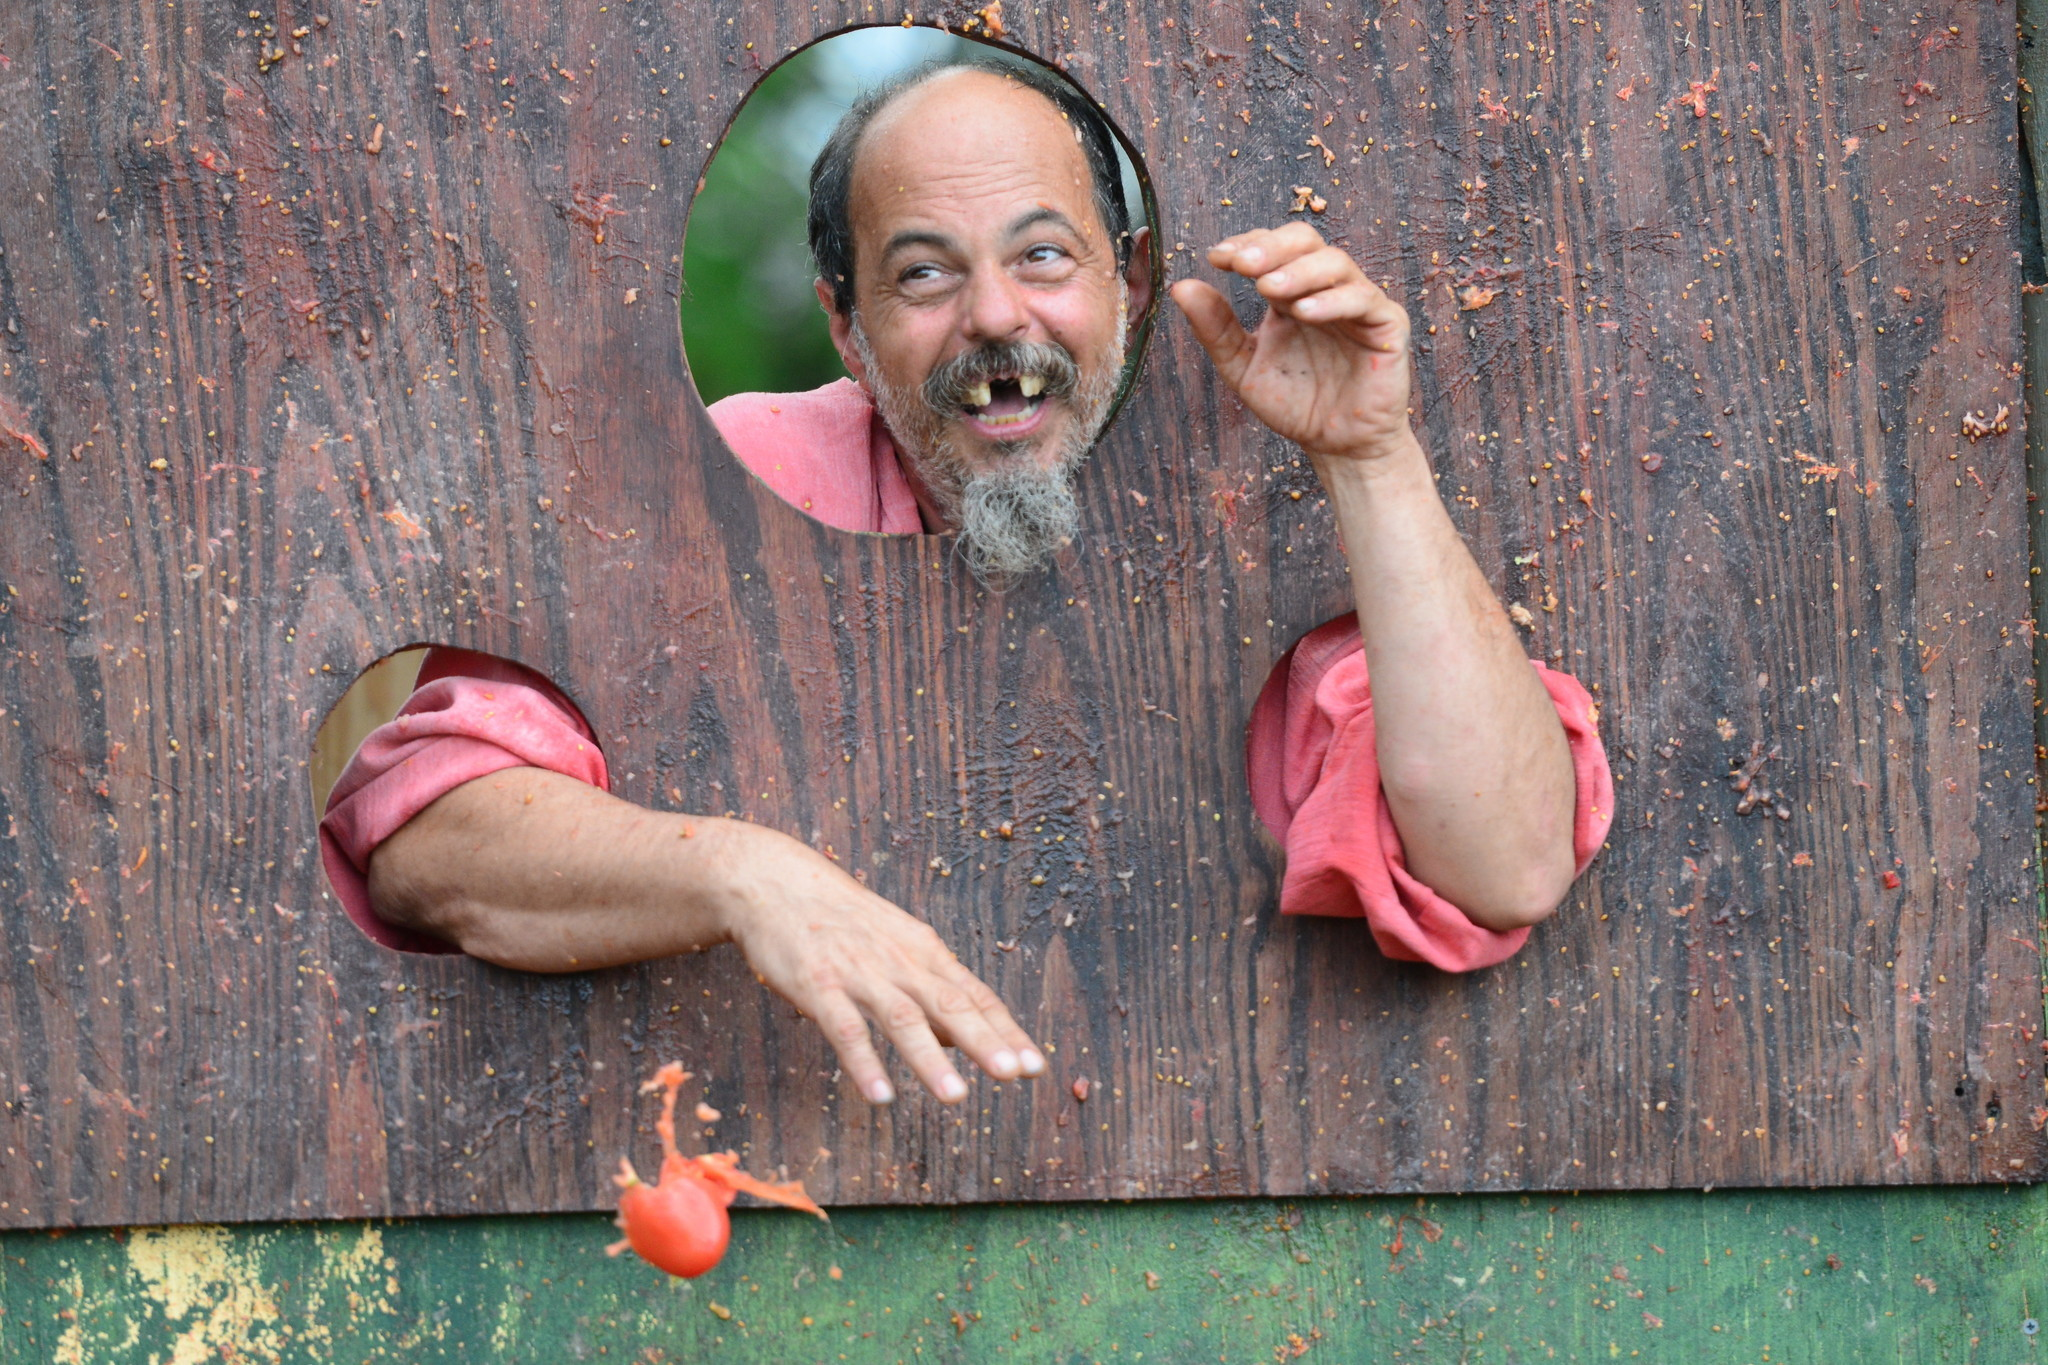 Renaissance Festival photos - Sean the tomato guy